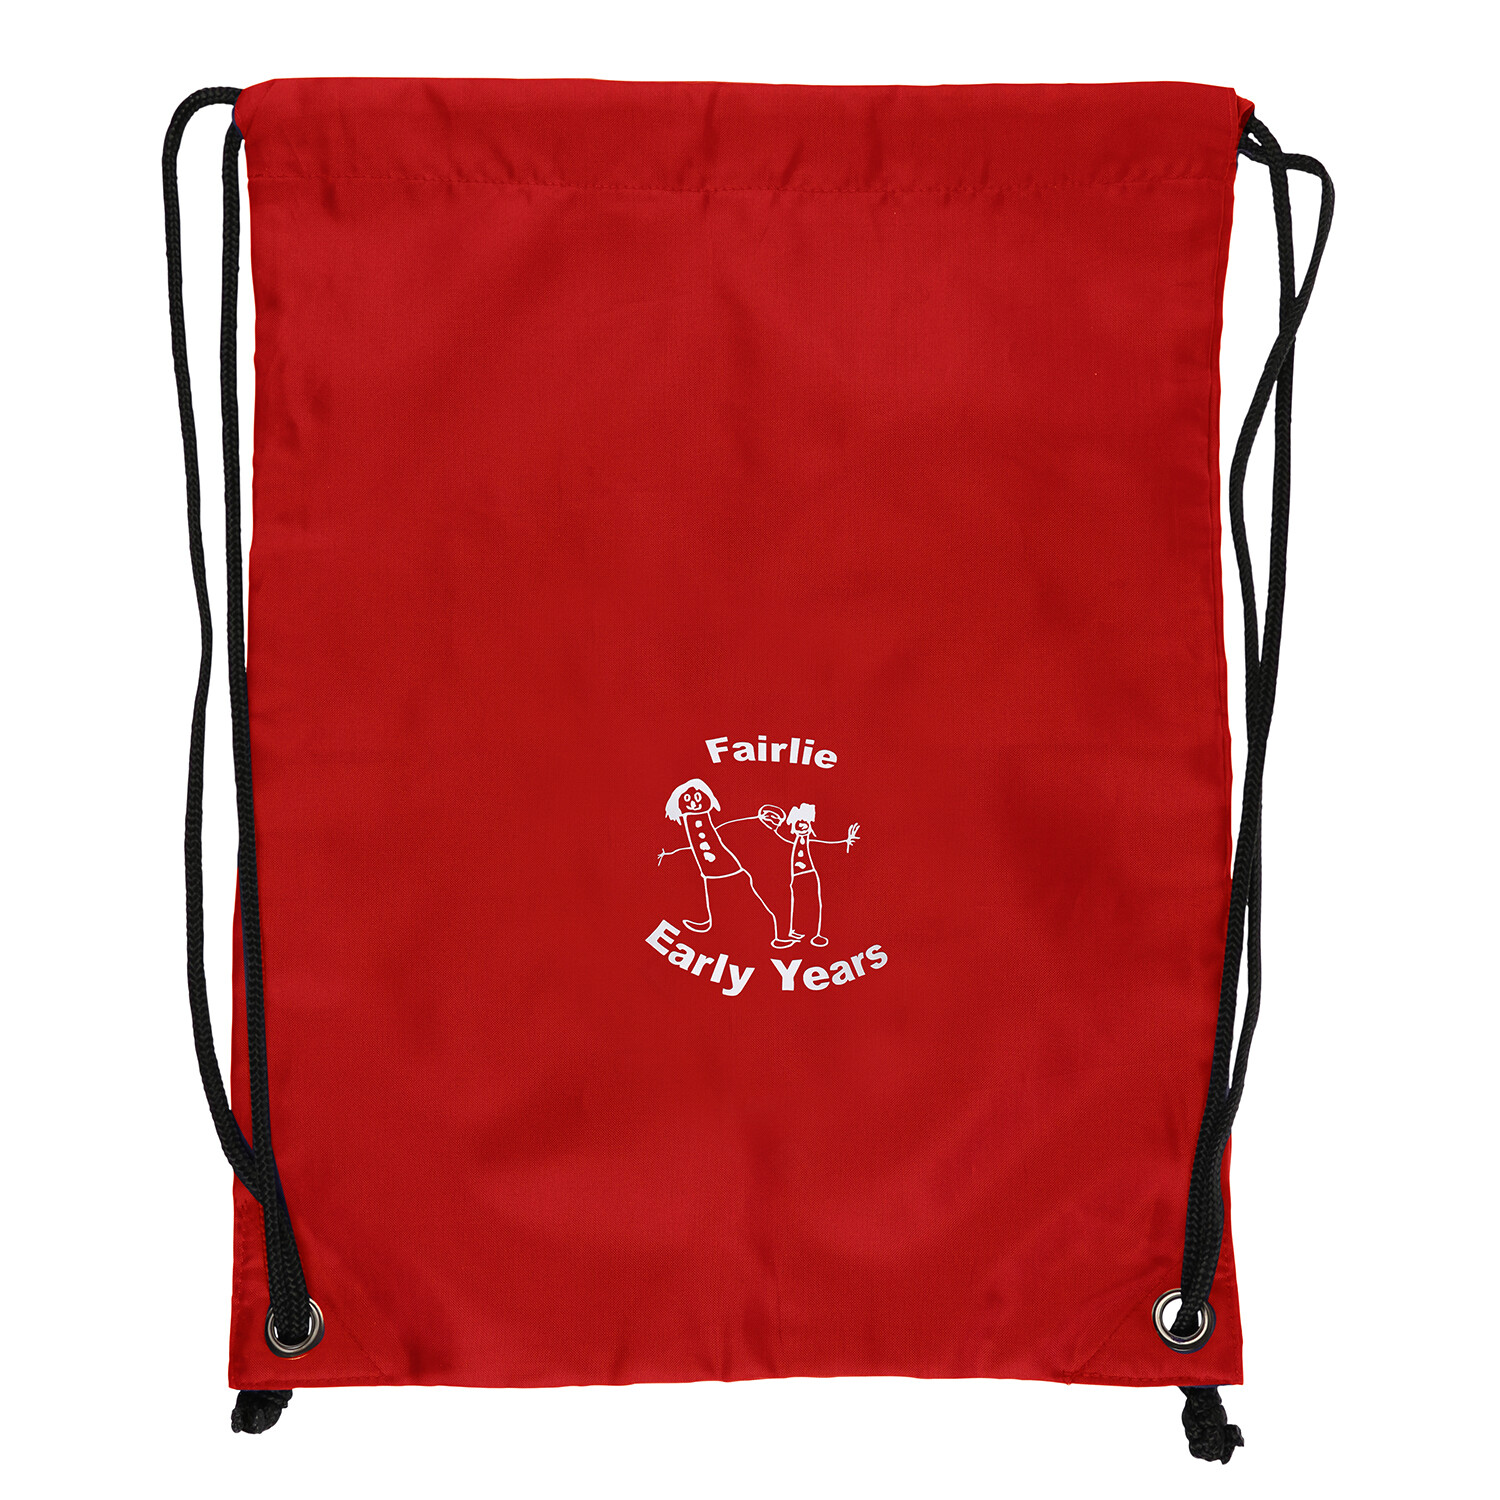 Fairlie Early Years Gym Bag